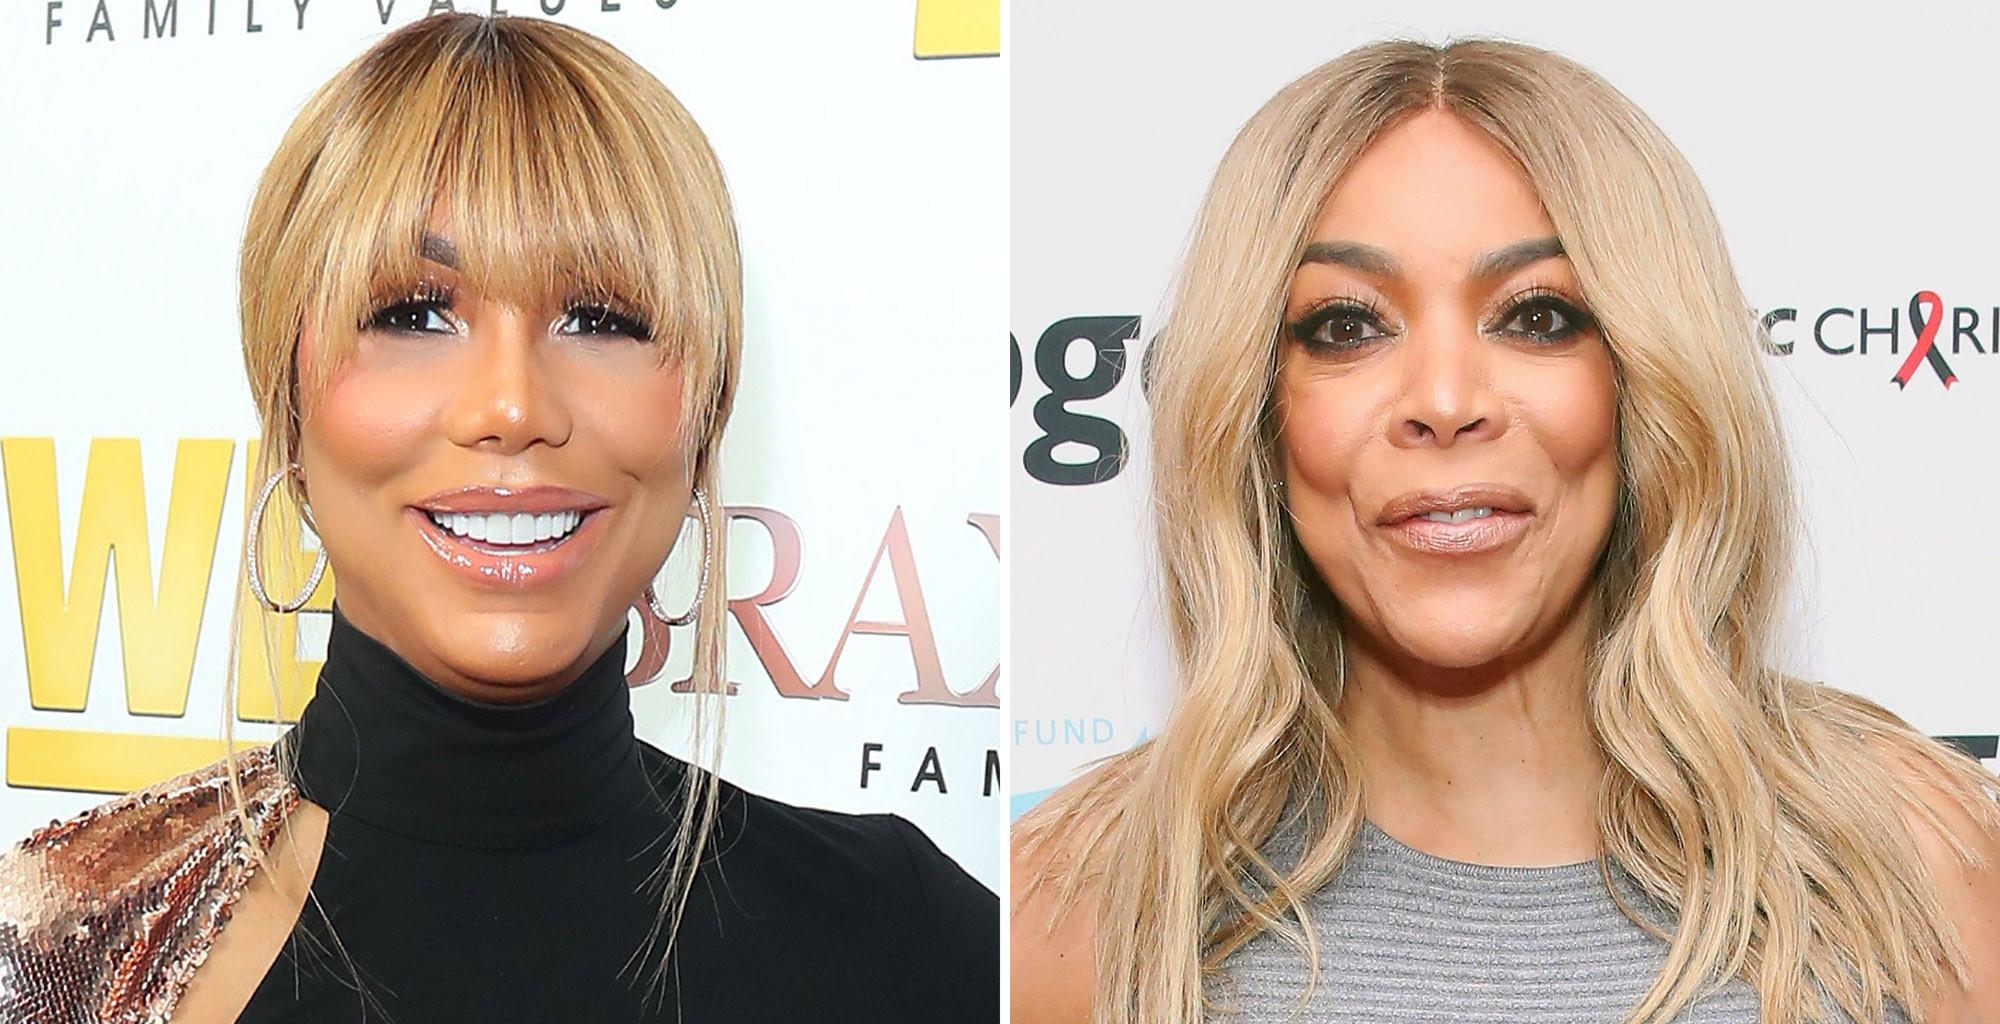 Wendy Williams' Latest Photo Gives A Glimpse Of The Shenanigans Taking Place At Her Soirée With Tamar Braxton And Nene Leakes